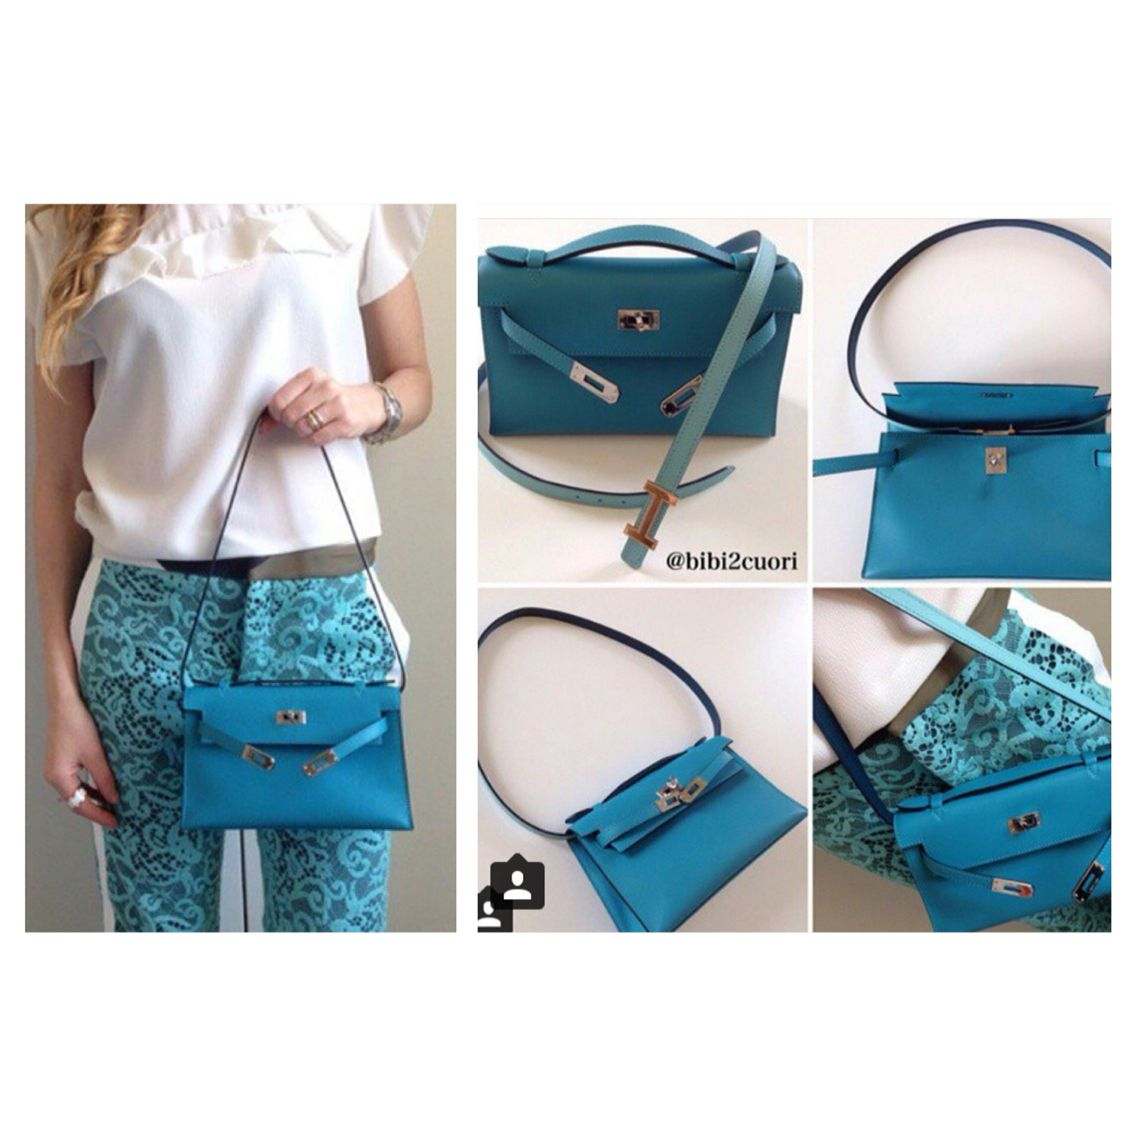 Using hermes belt as a strap for kelly pochette mini Kelly  c379cc5723a99